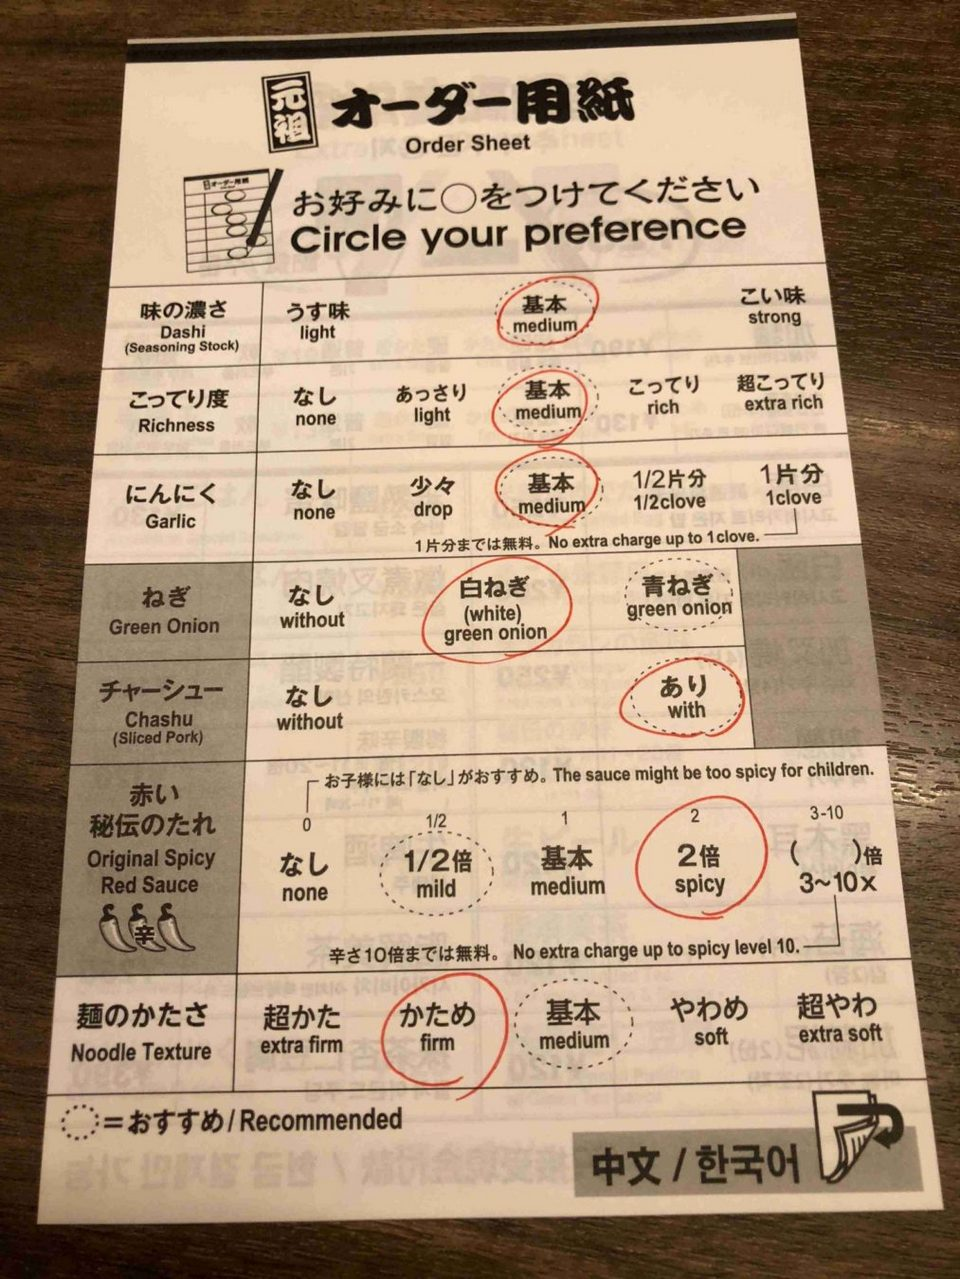 Preference taste survey at Ichiran Ramen